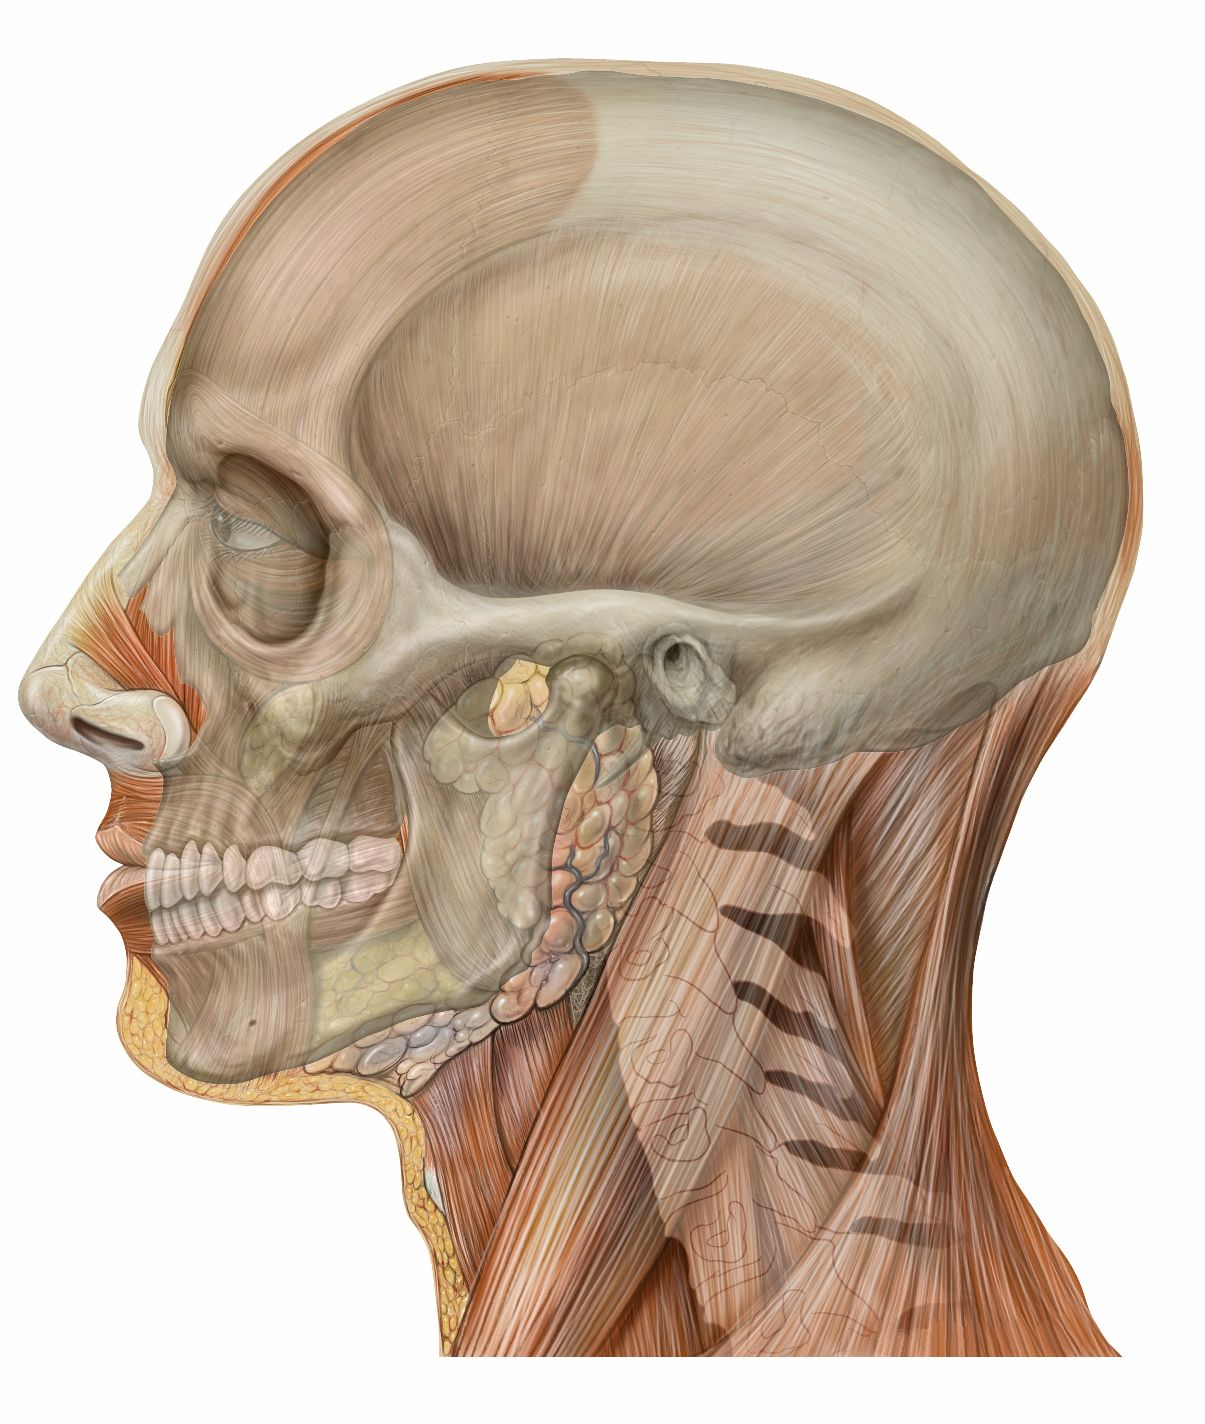 Head Lateral Skull Reference Board Anatomy Head Anatomy Skull